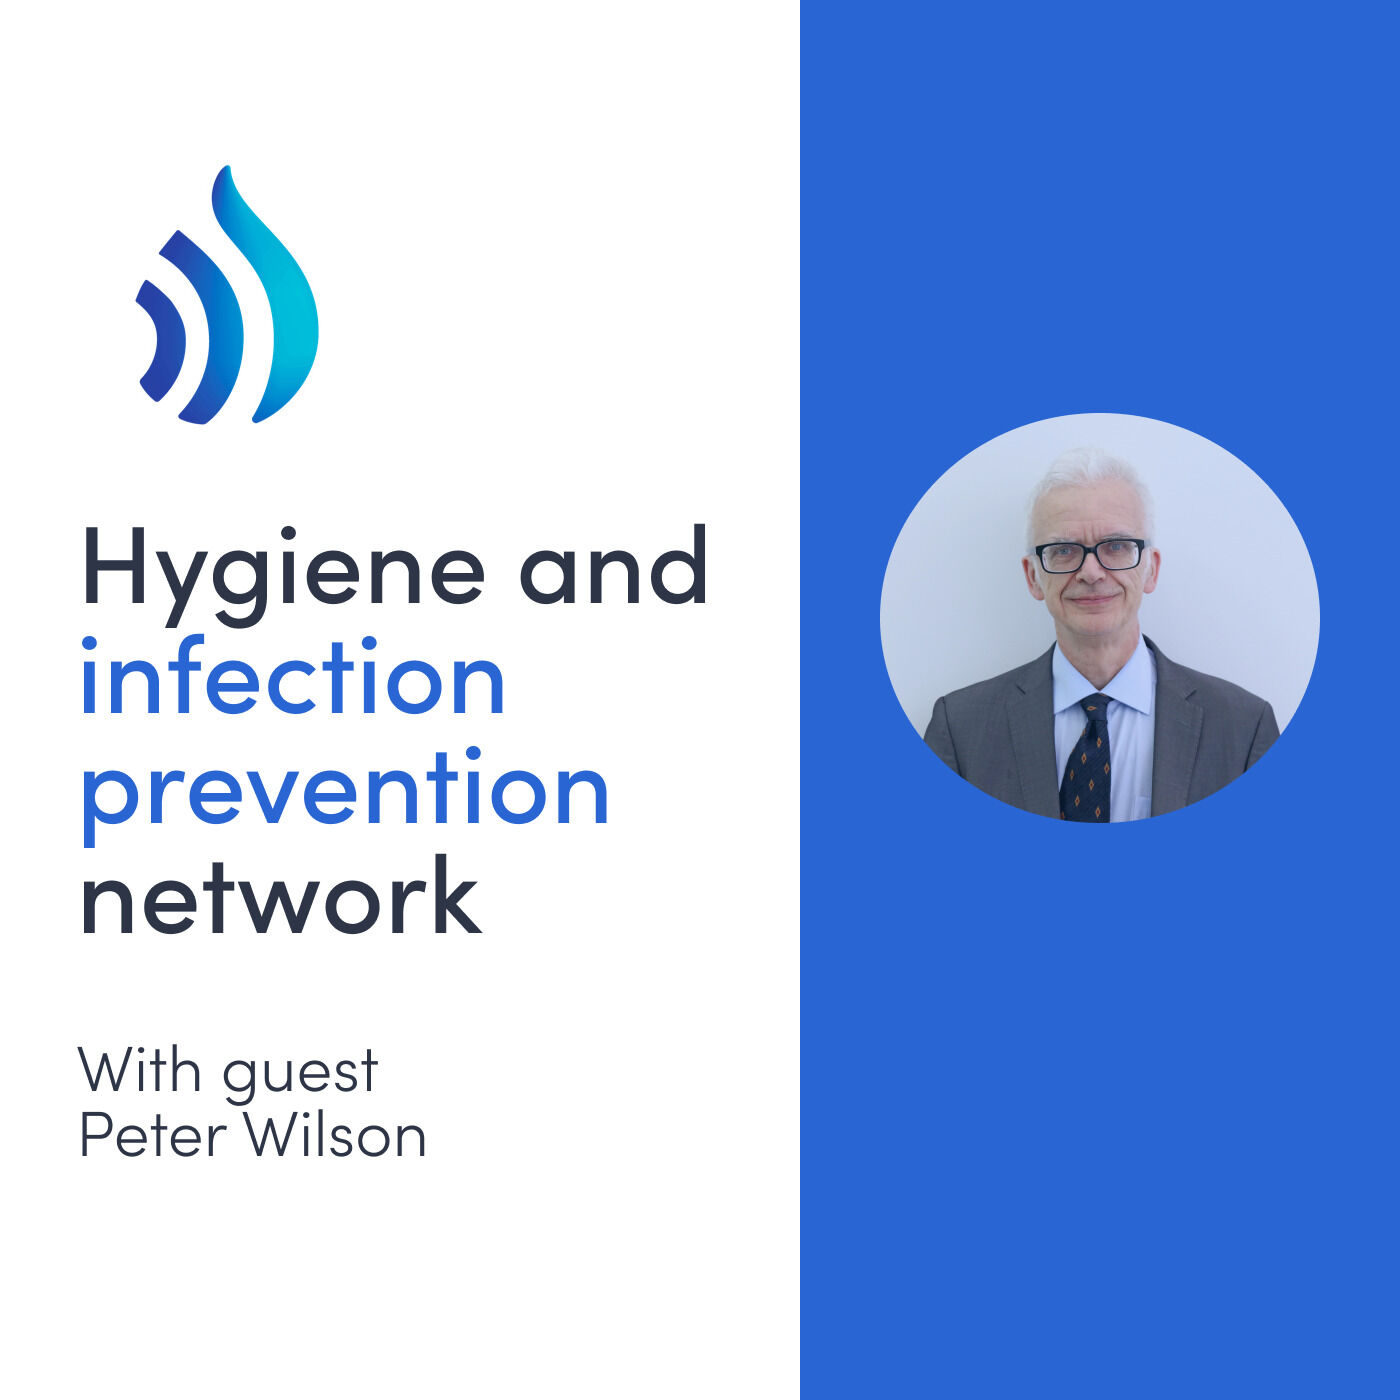 #5 Peter Wilson on anti-microbial stewardship and infection control (United Kingdom)